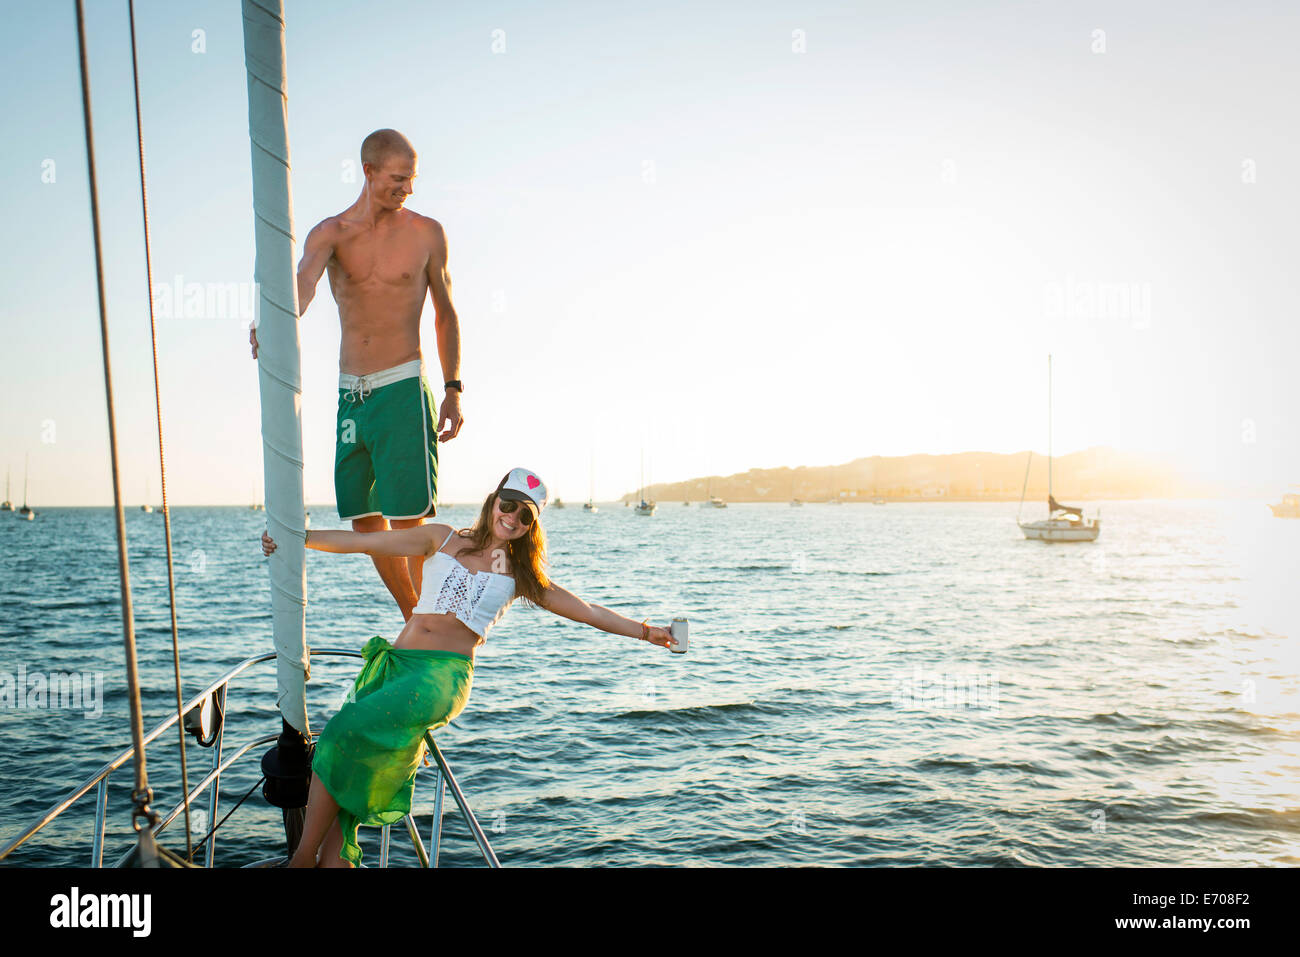 Playful mid adult couple on boat in ocean - Stock Image